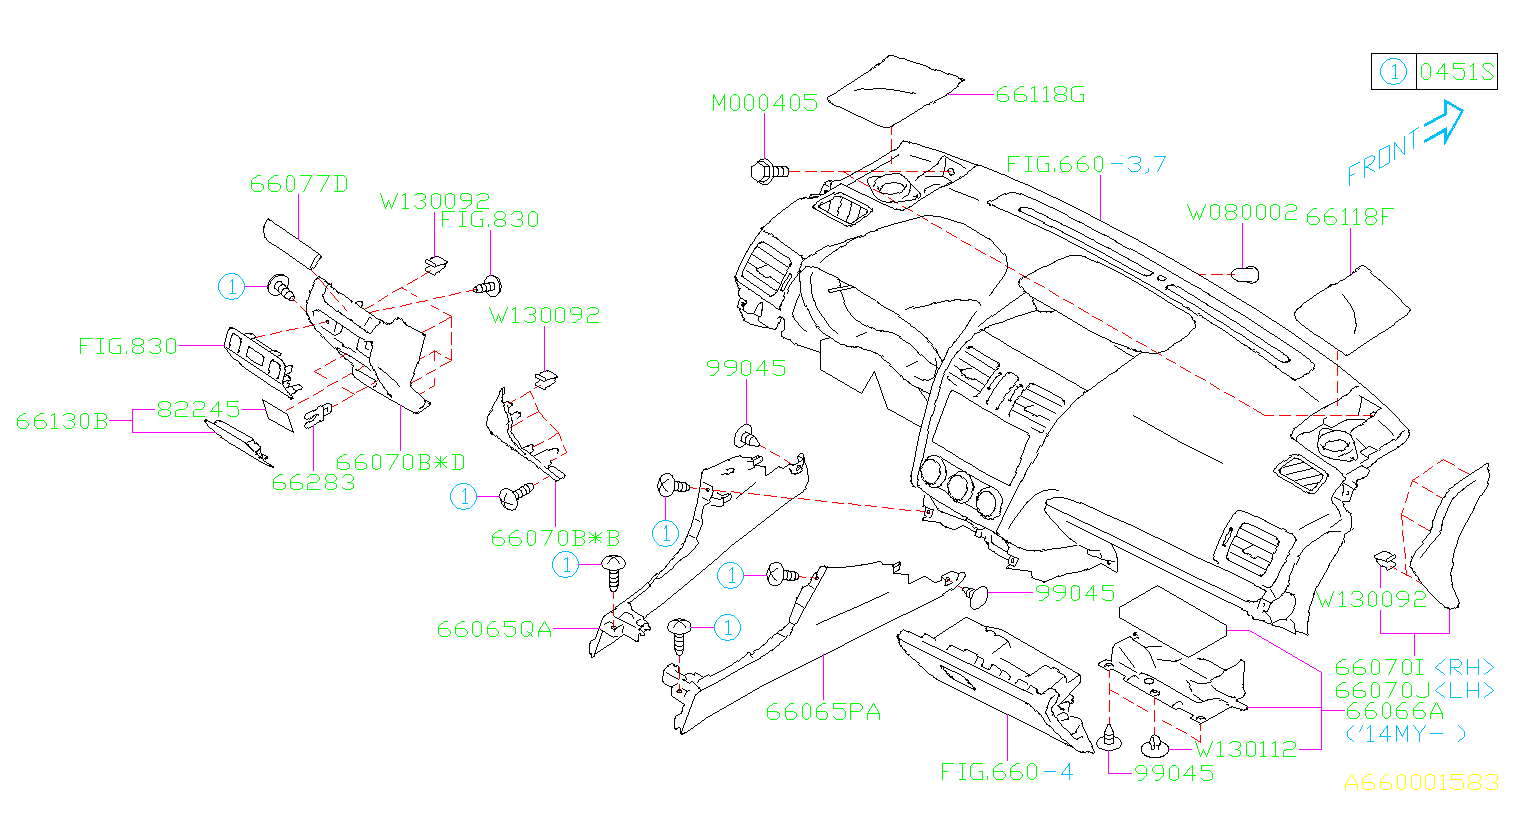 2006 Subaru Outback Auto Body Parts Diagram Schematics Data Wiring Crosstrek Fuse Box 25 Images Diagrams Avadelle Co Replacement 2012